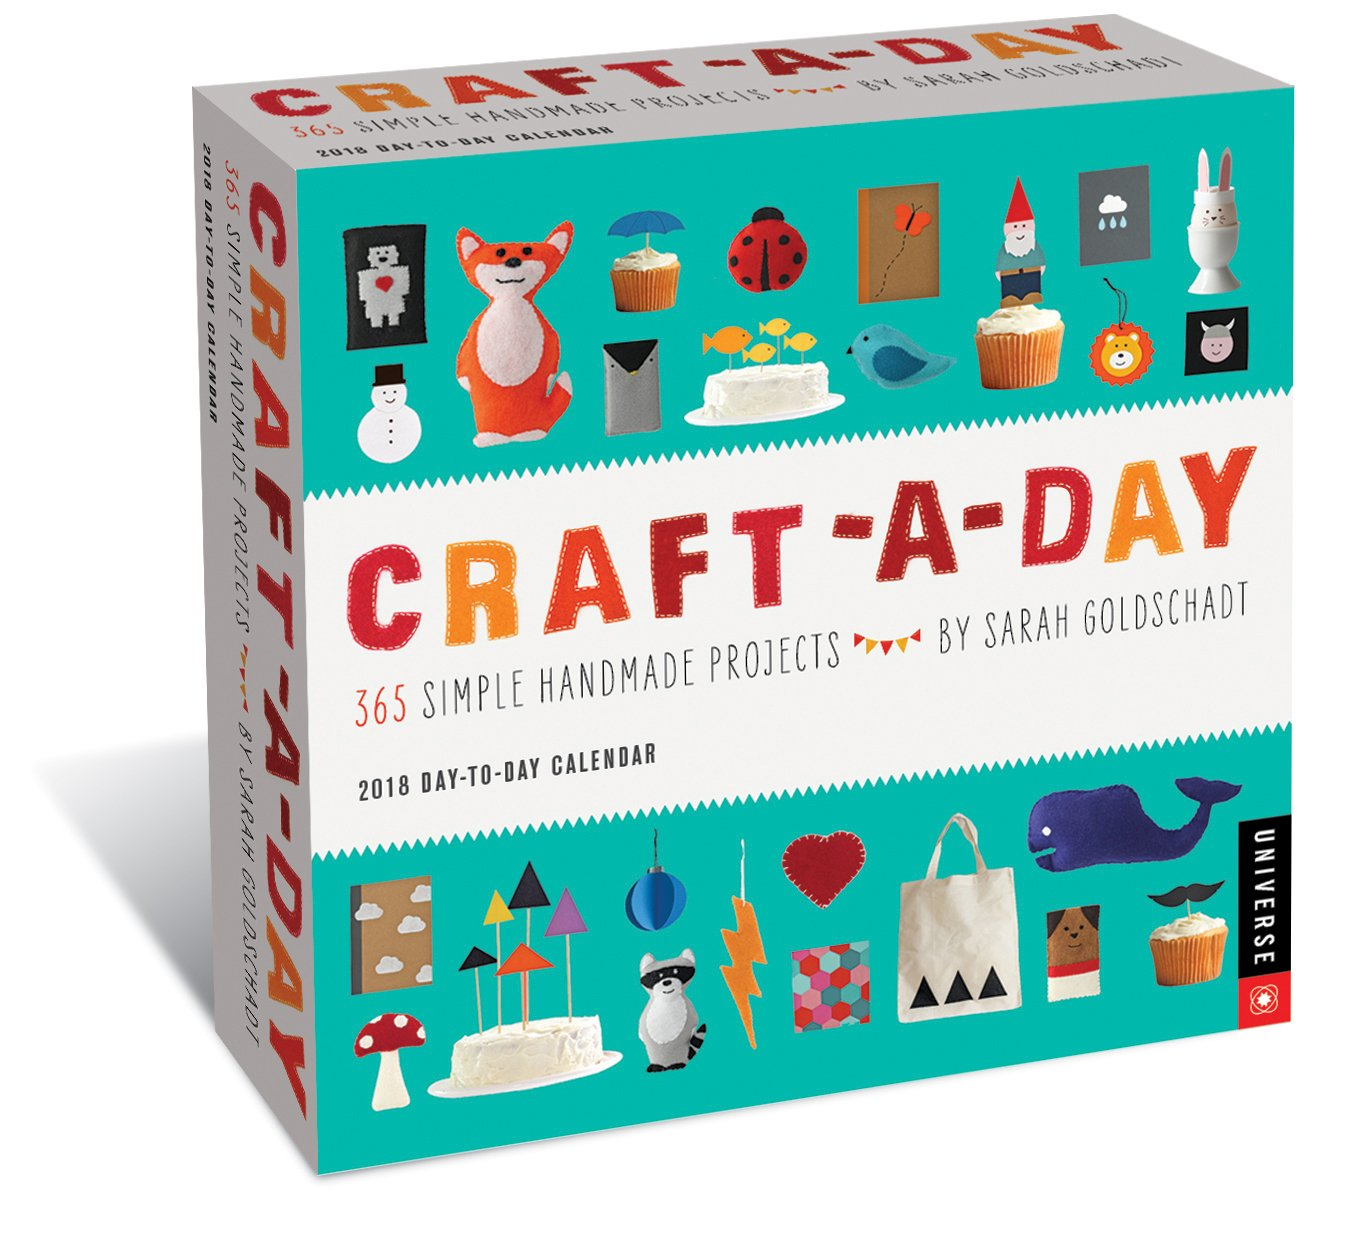 Craft-a-Day Day-to-Day Calendar: 365 Simple Handmade Projects